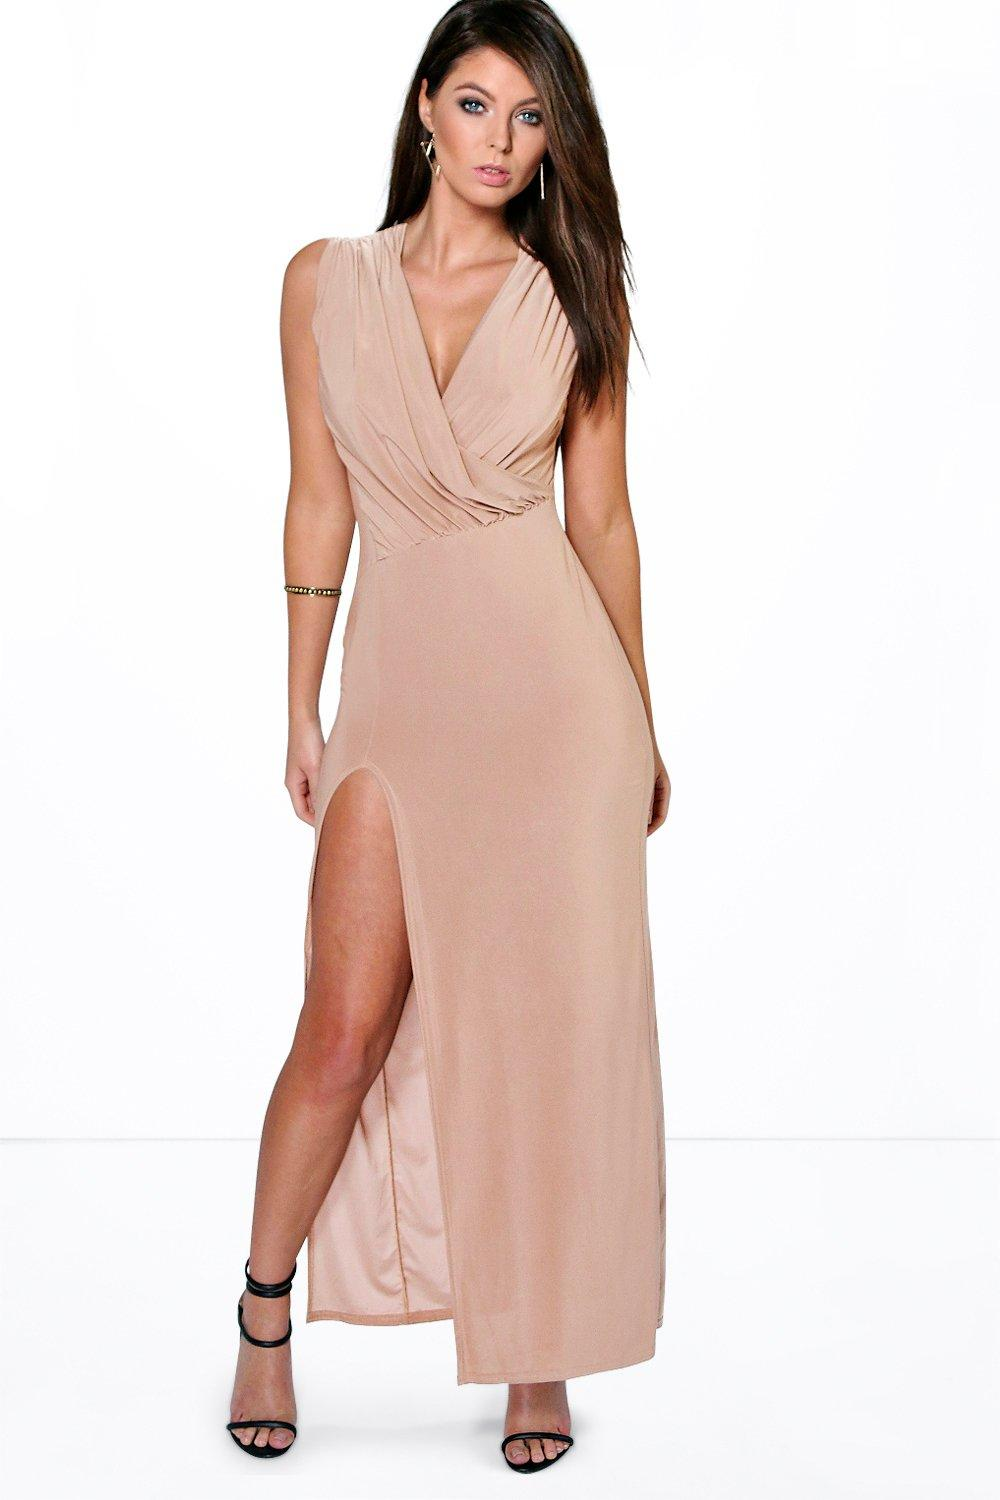 0ccae1f57c54a Cindy Draped Plunge Thigh Slit Maxi Dress. Hover to zoom